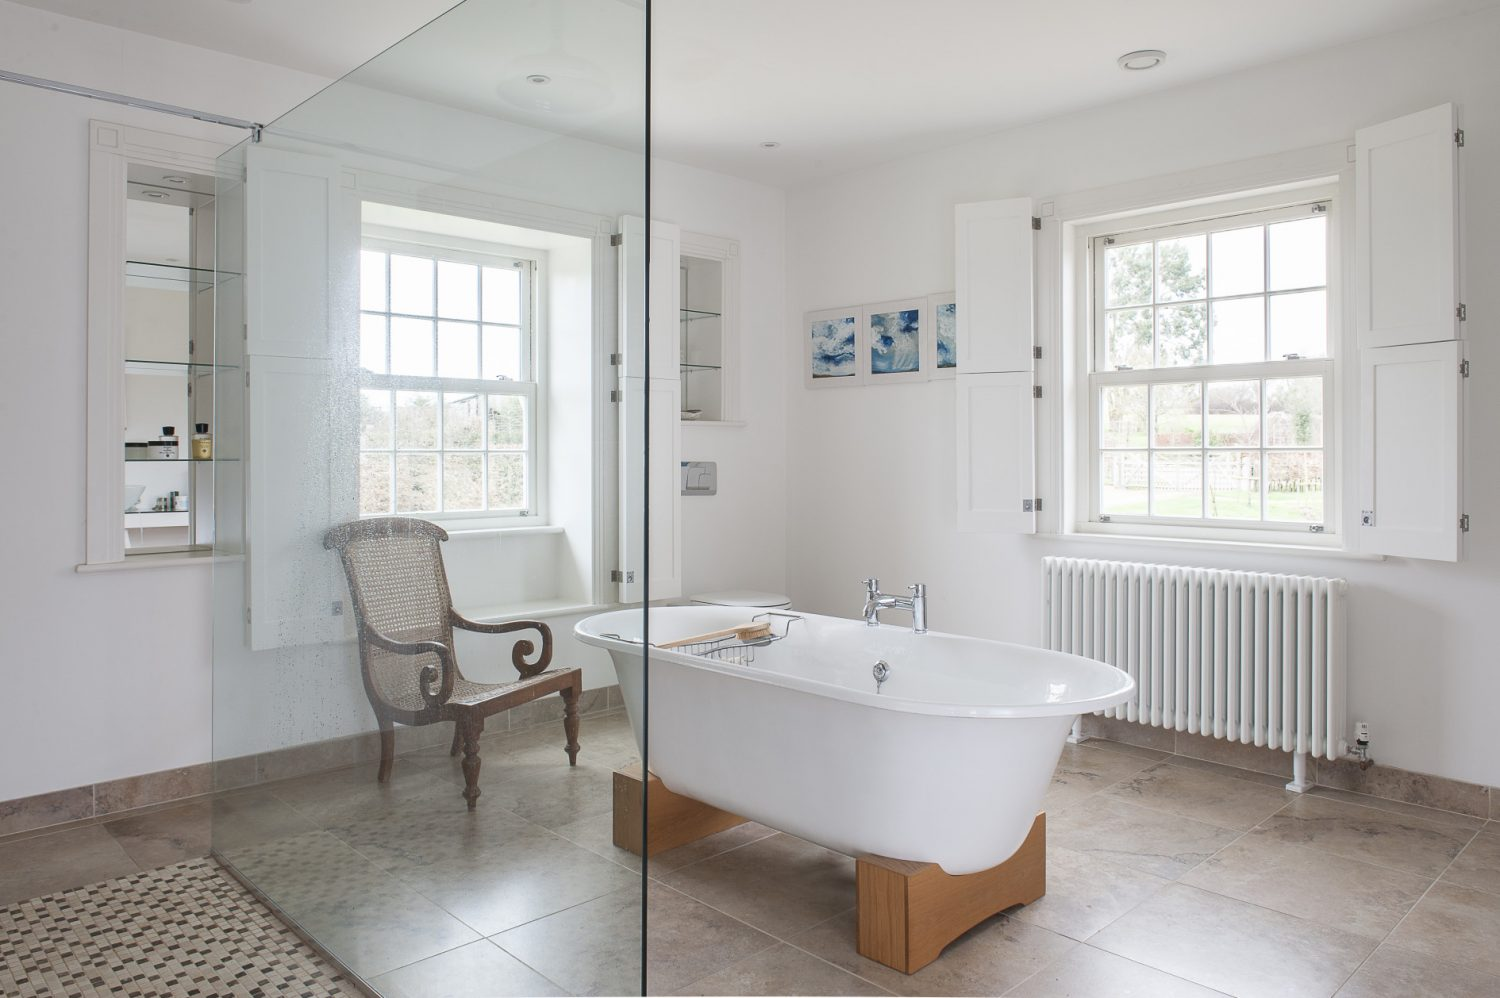 The en suite bathroom has a free-standing bath in the middle of the room and a to-die-for walk-through shower along one side. Ceramic tiles that look just like limestone (but are much easier to keep clean if you live in a hard water area) have been used and look great